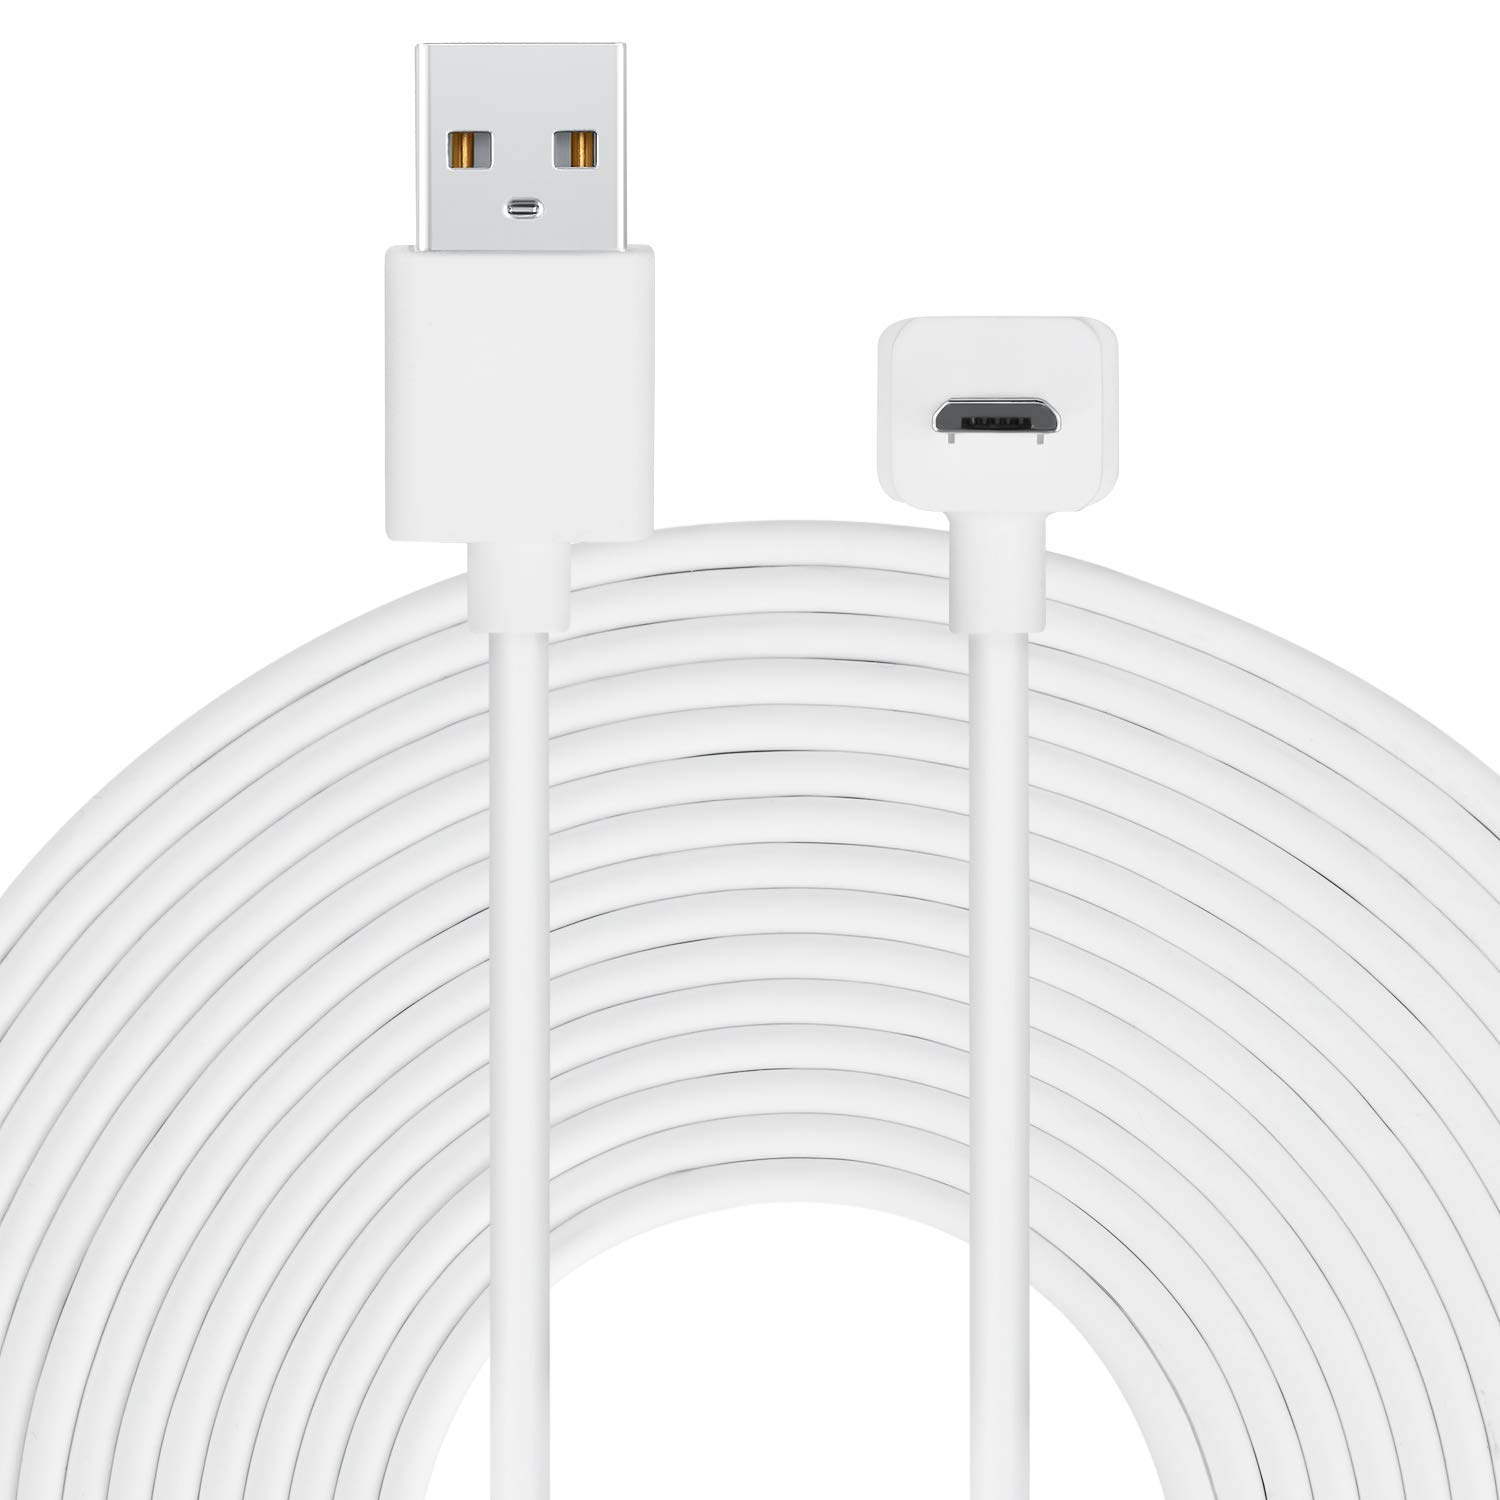 Long Cable Compatible with Amazon Cloud Cam with thoughtfully designed L-Shaped Micro-USB Head - by Wasserstein - Longer reach for your Cloud Cam (6m / 20ft, White)